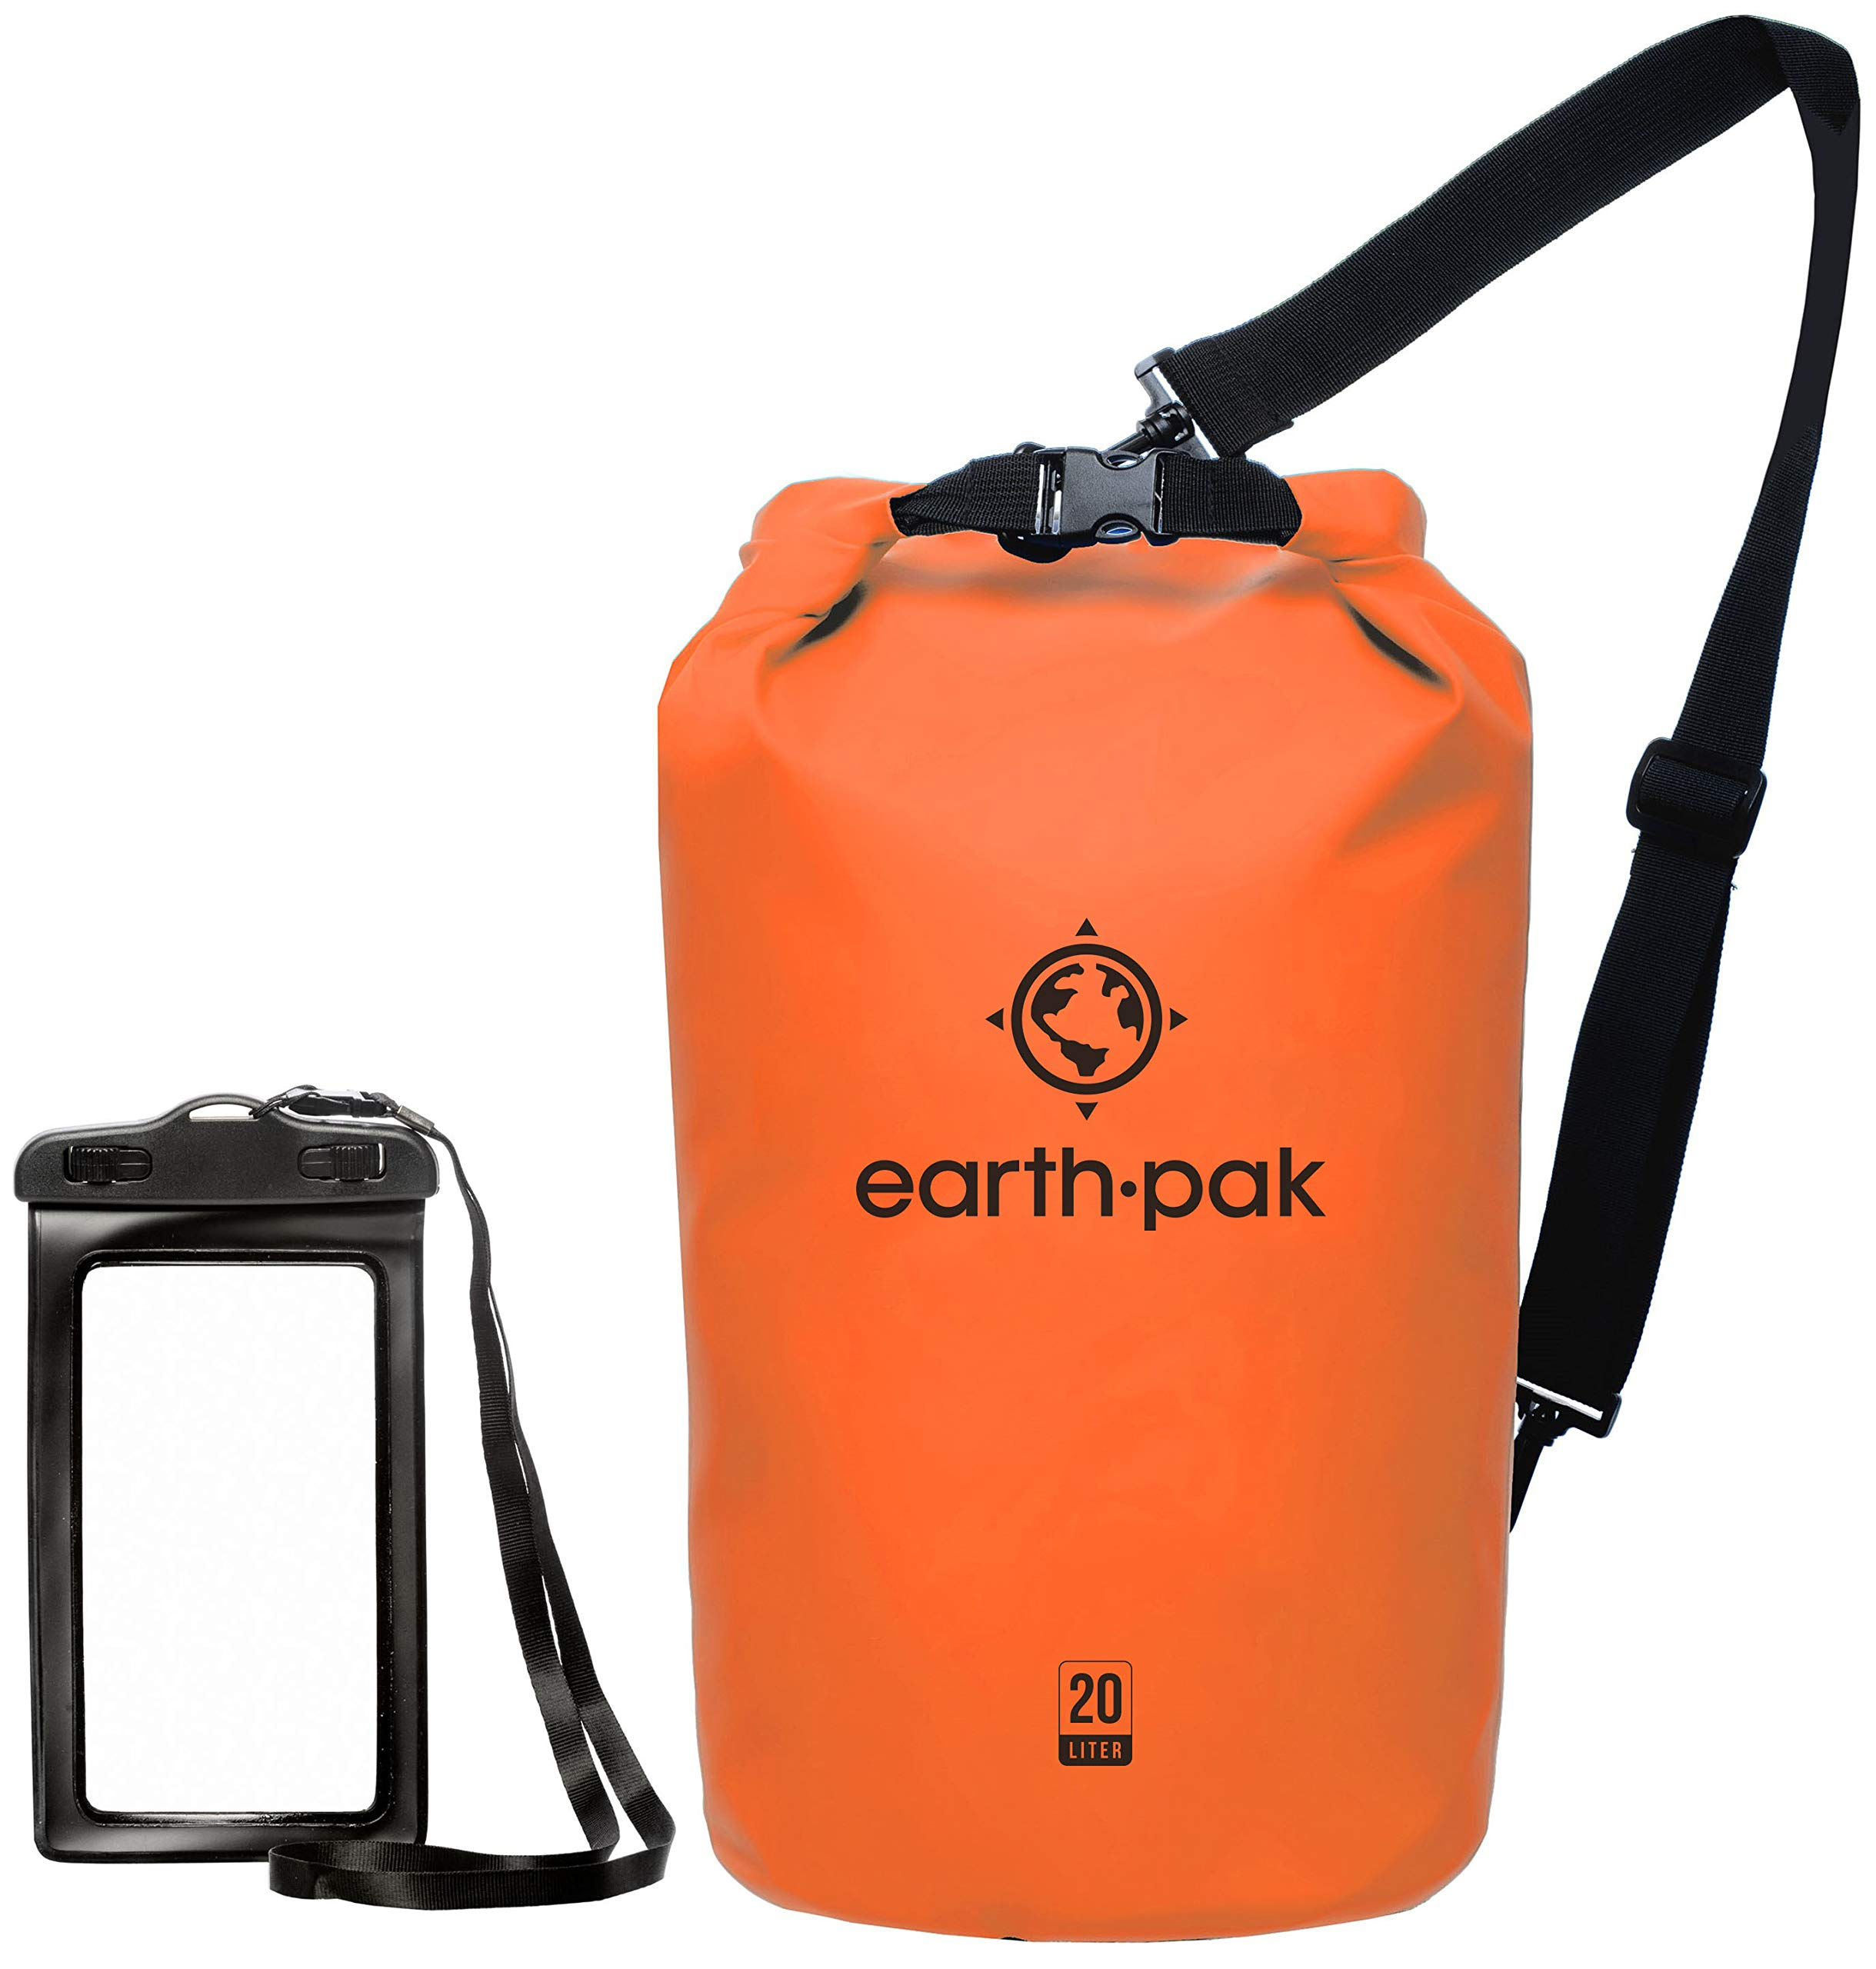 Earth Pak -Waterproof Dry Bag - Roll Top Dry Compression Sack Keeps Gear  Dry for Kayaking, Beach, Rafting, Boating, Hiking, Camping and Fishing with  ... 31f7e2e6a8